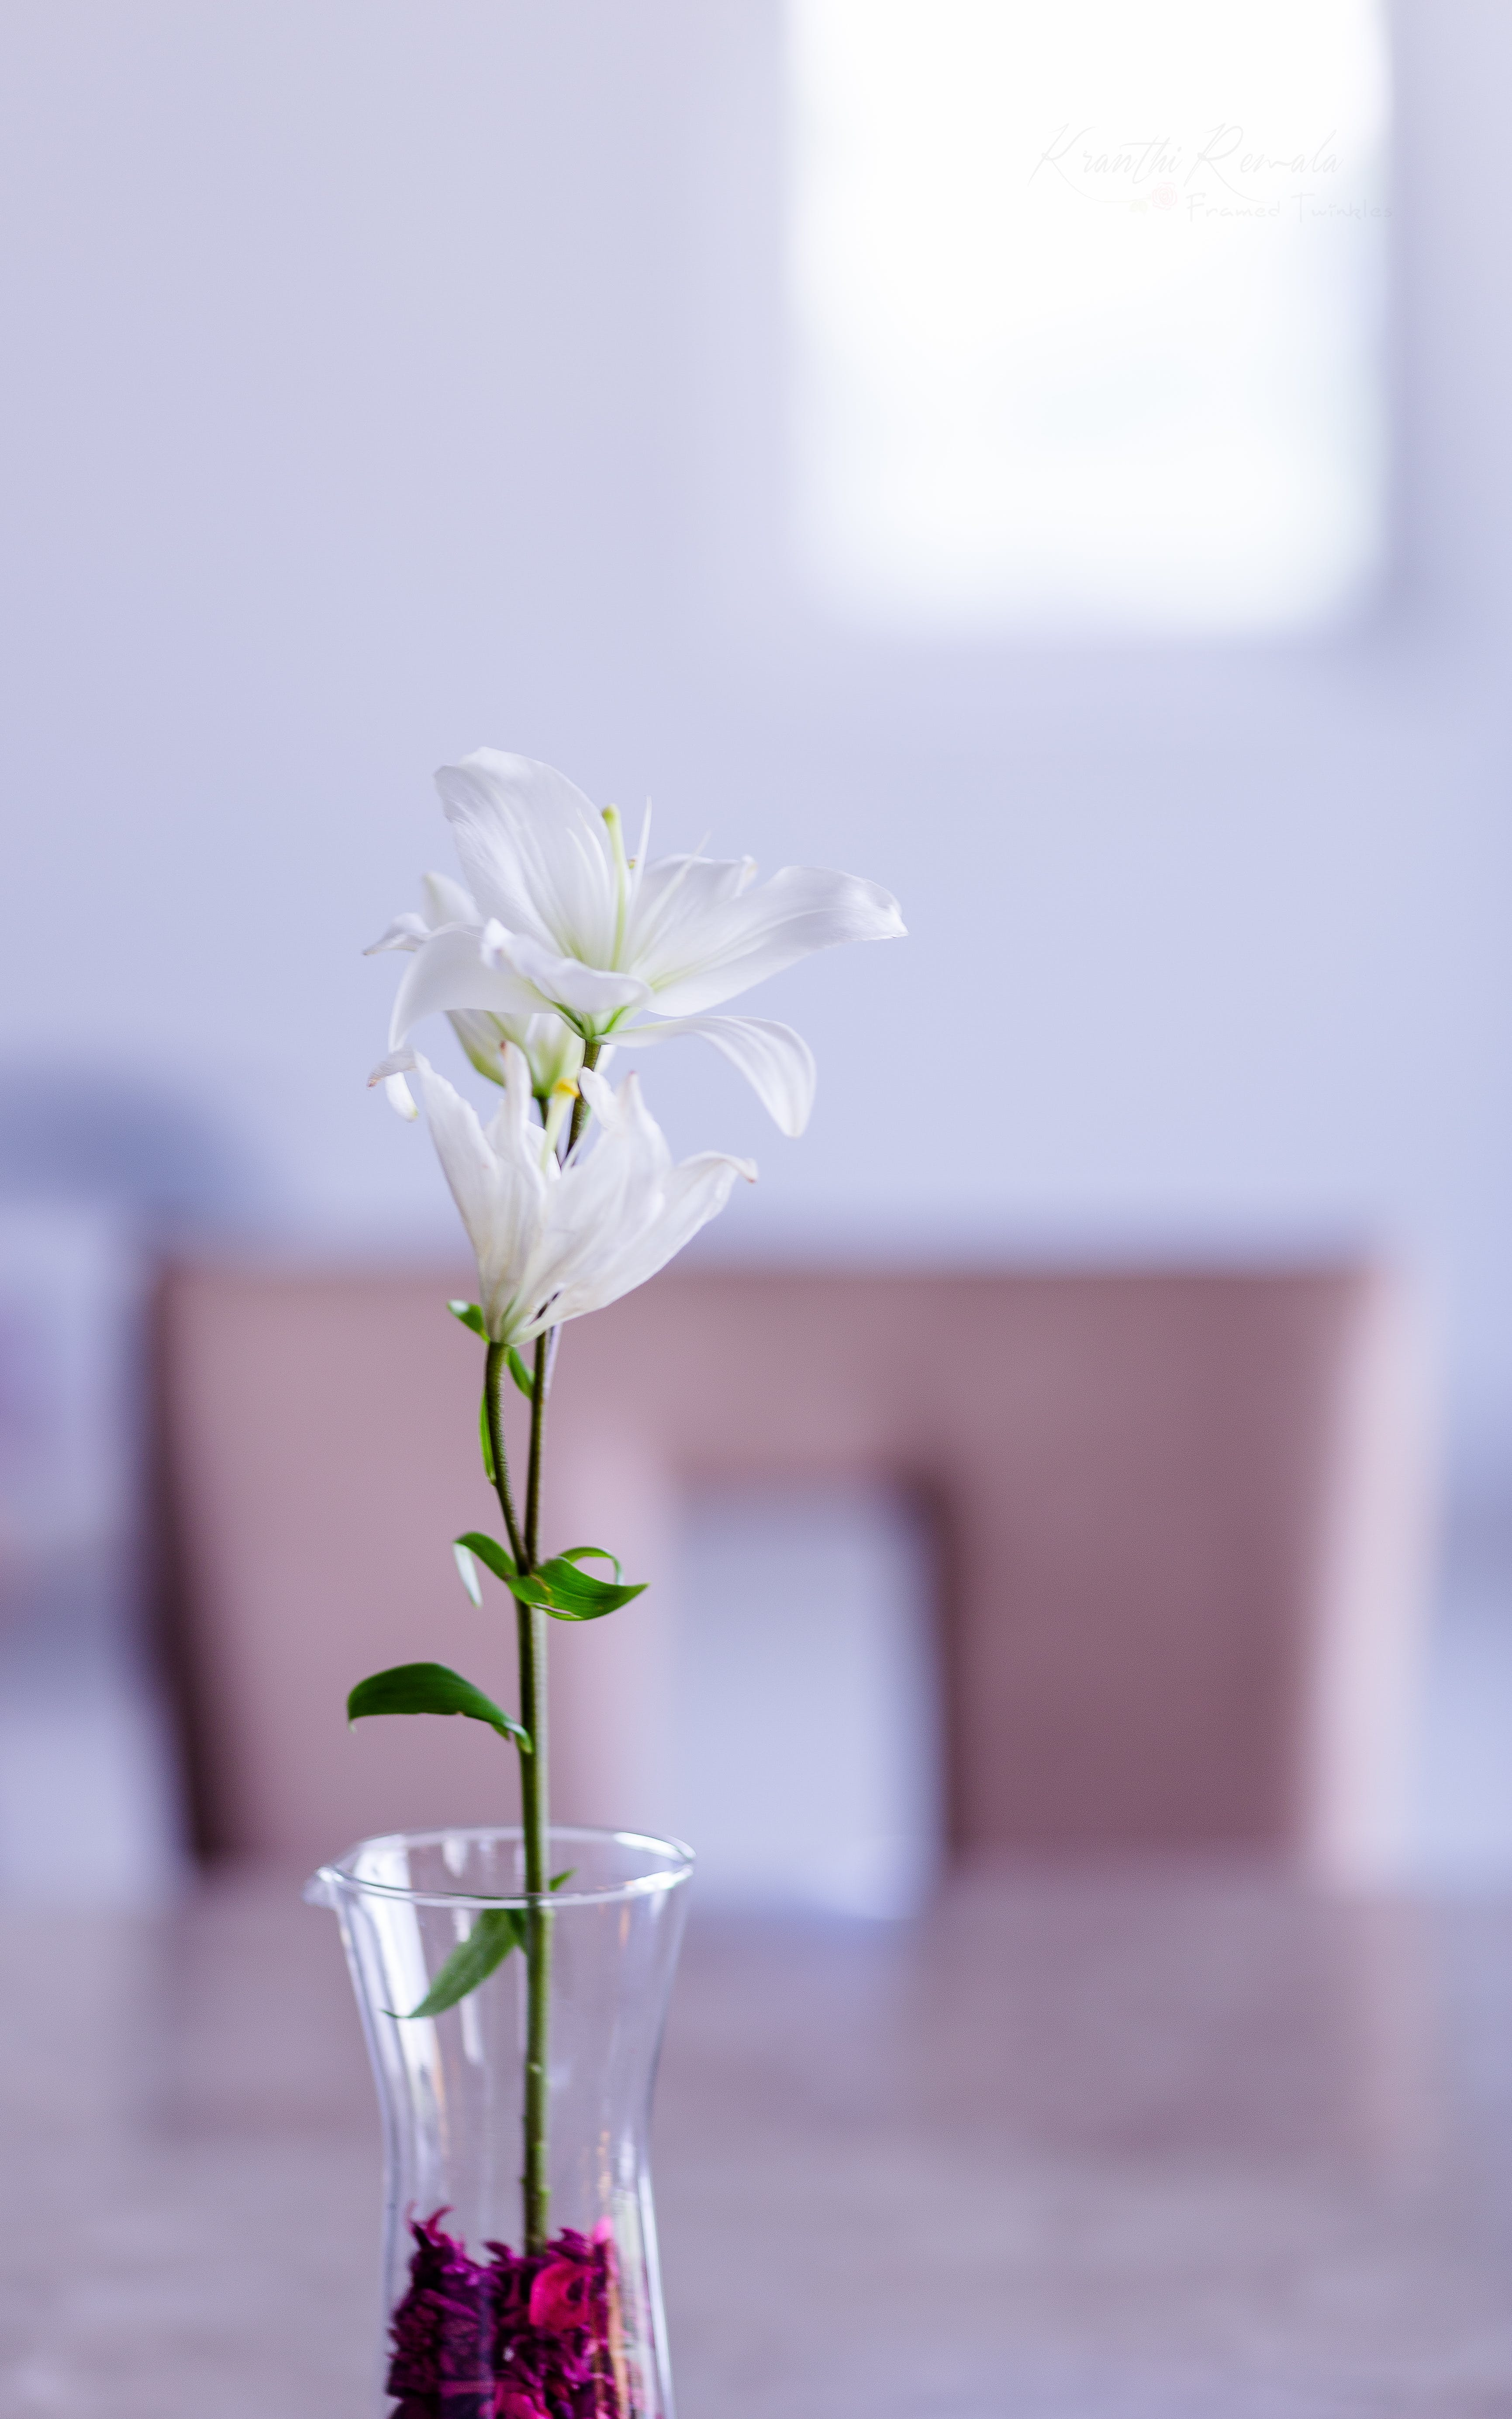 Selective Focus Photography of White Petaled Flower in Vase